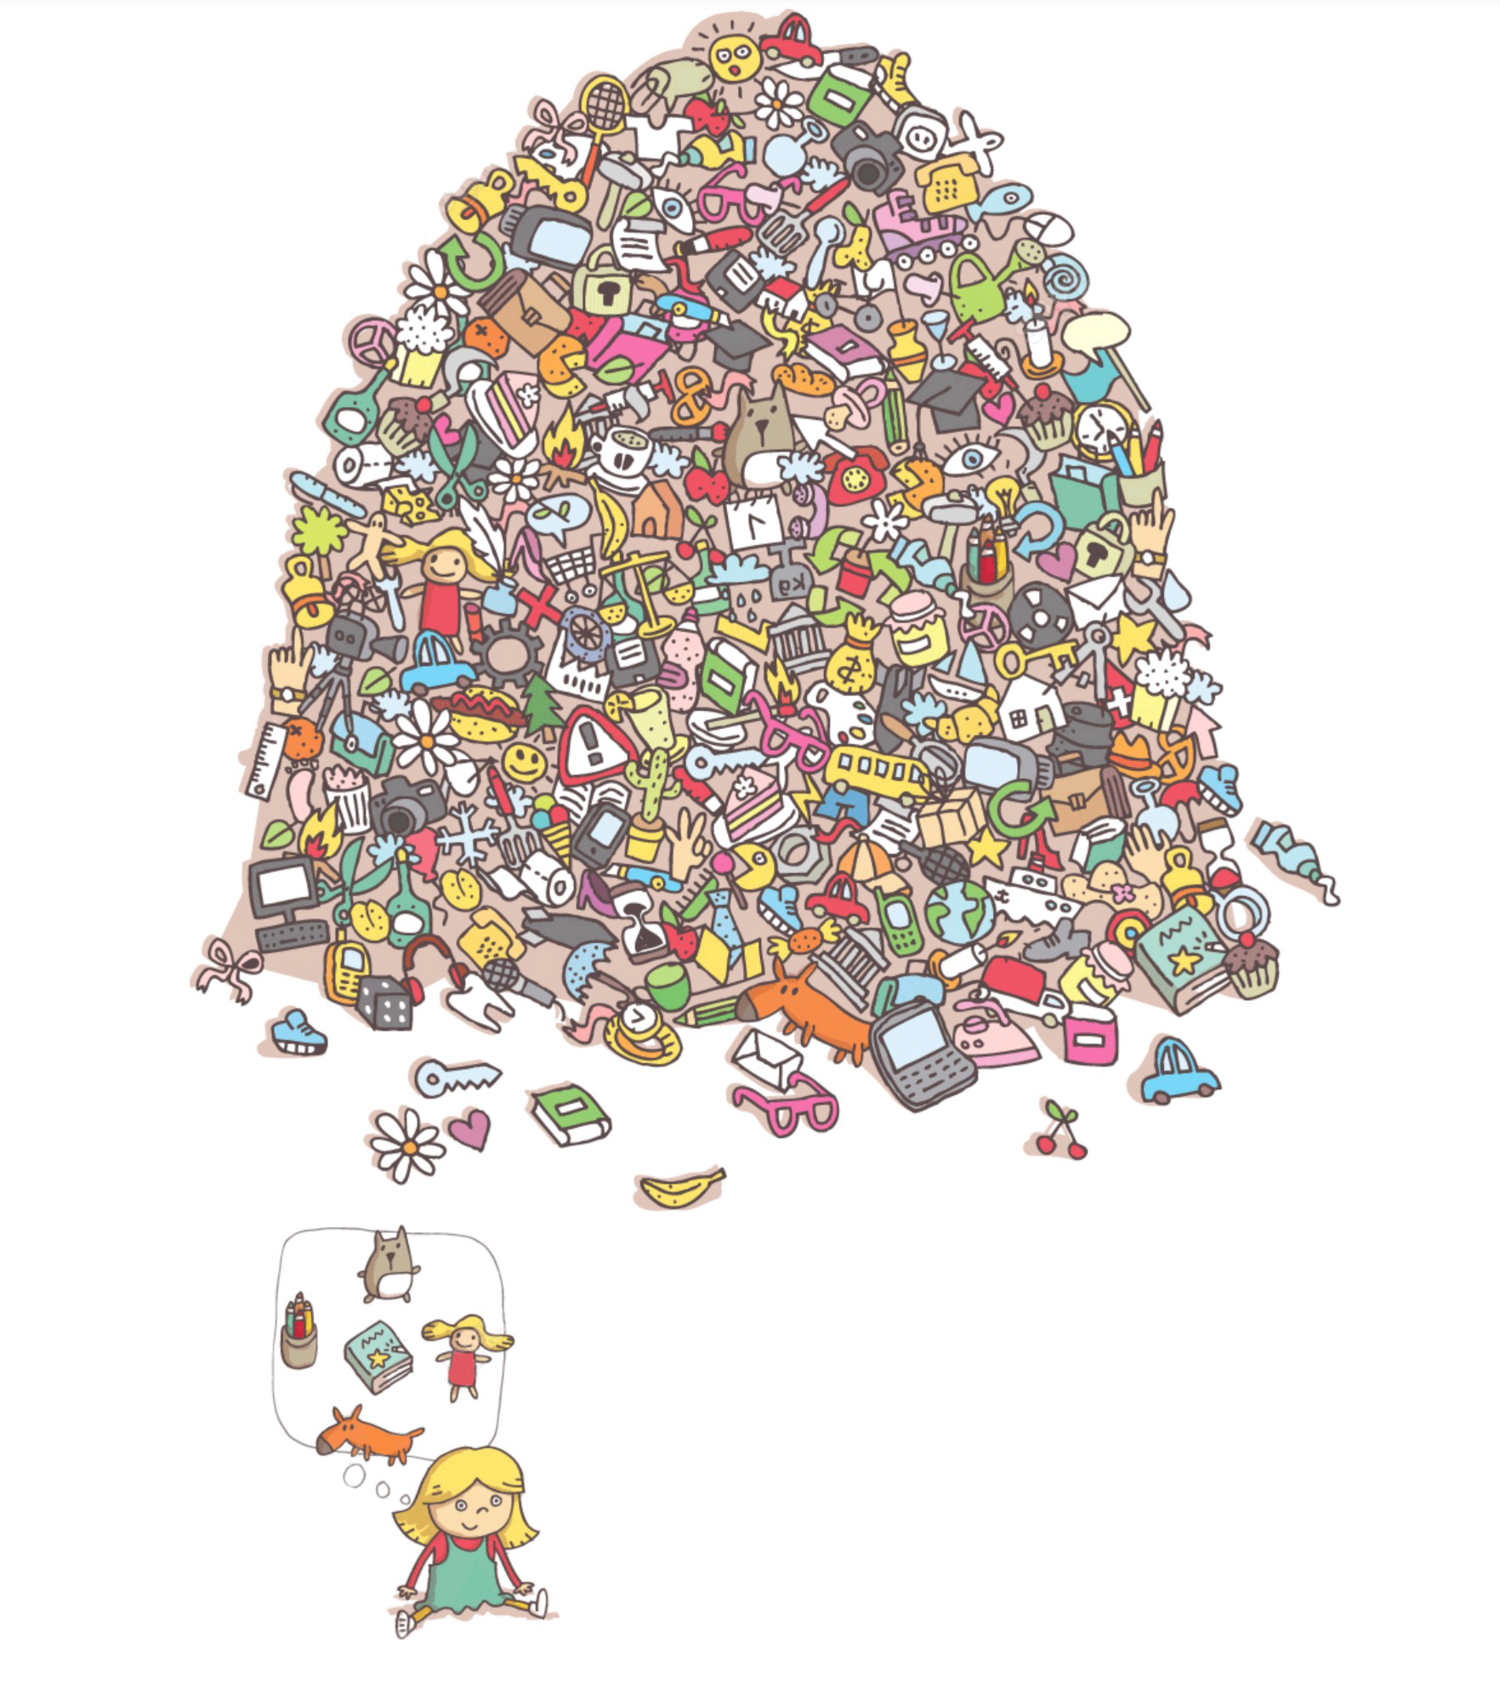 Find the five hidden objects shown in the little girl's bubble.